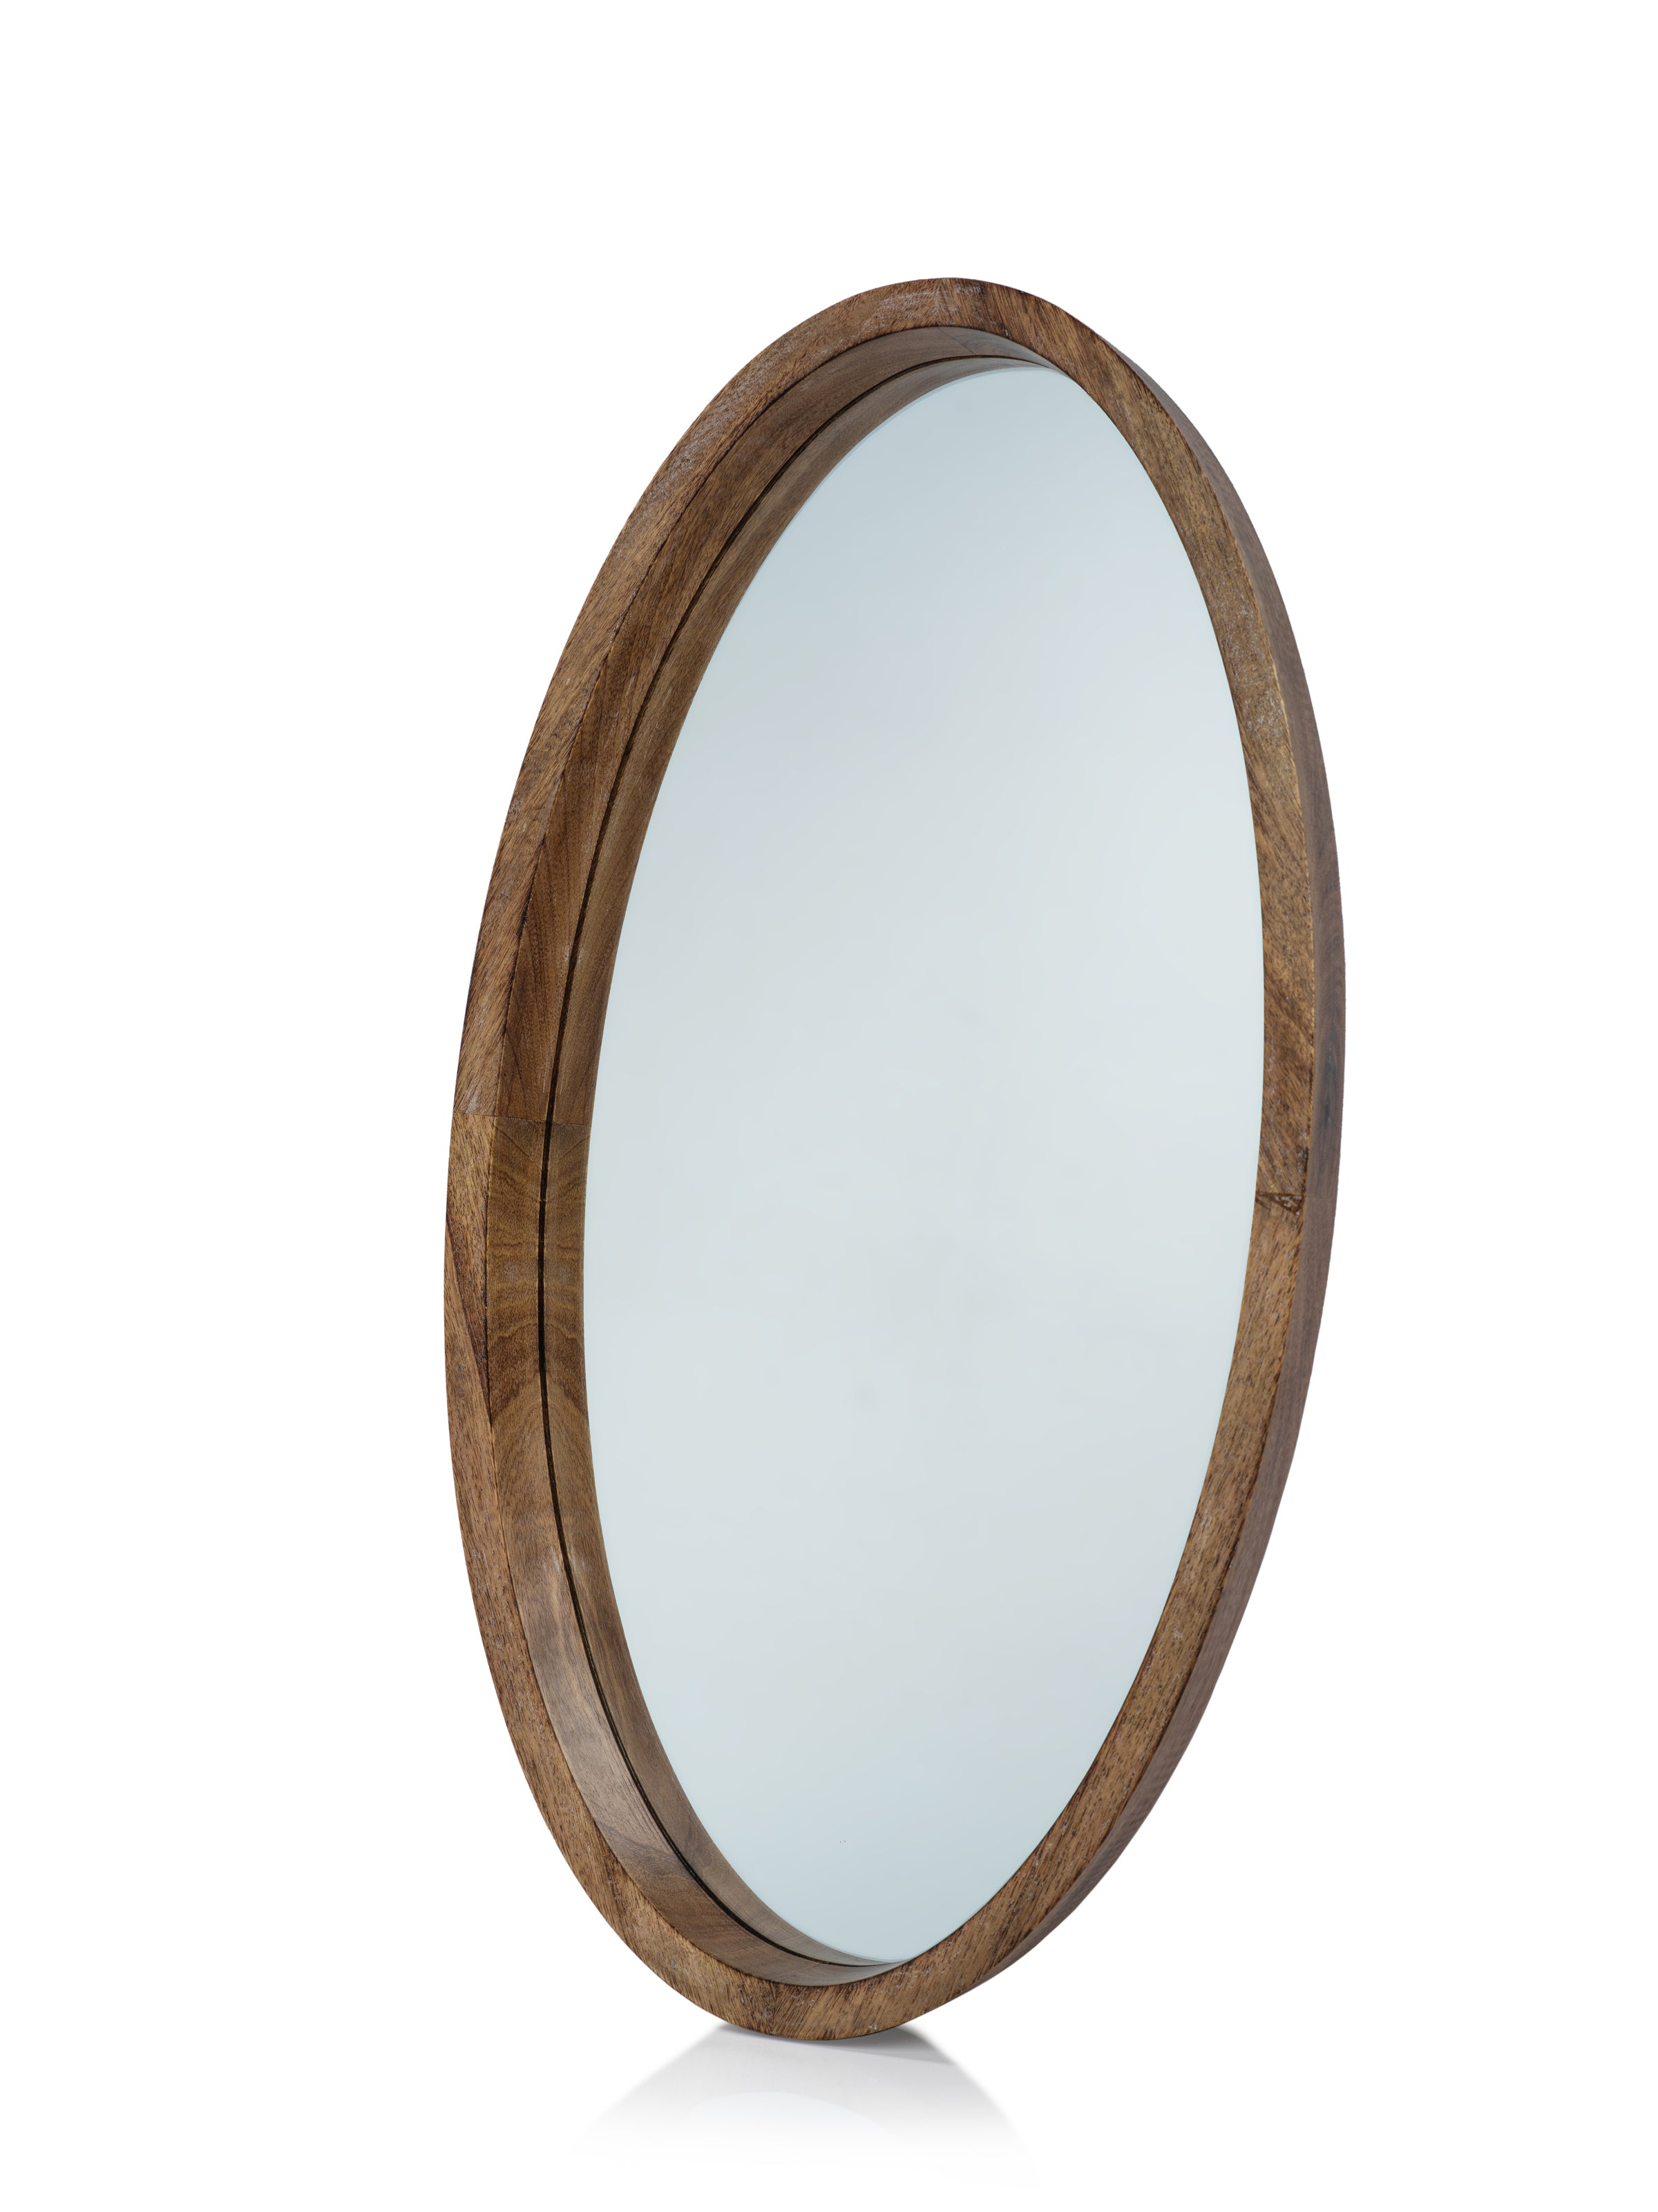 Heritage Mango Wood Oval Mirror - CARLYLE AVENUE